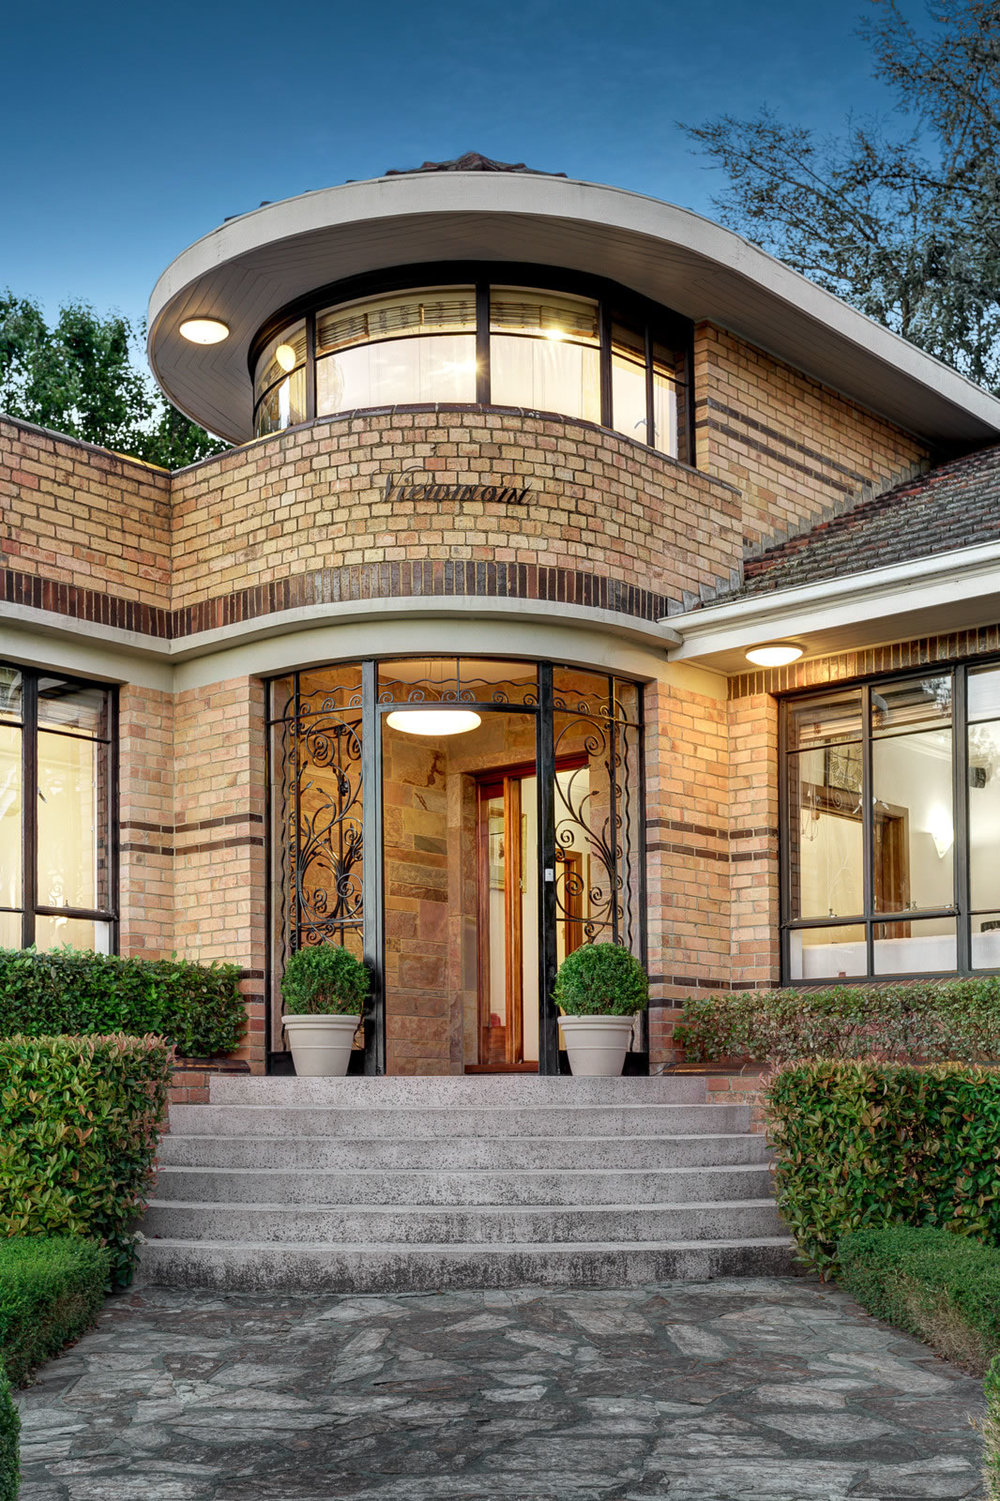 Historical architectural style the art deco waterfall for Home architecture styles